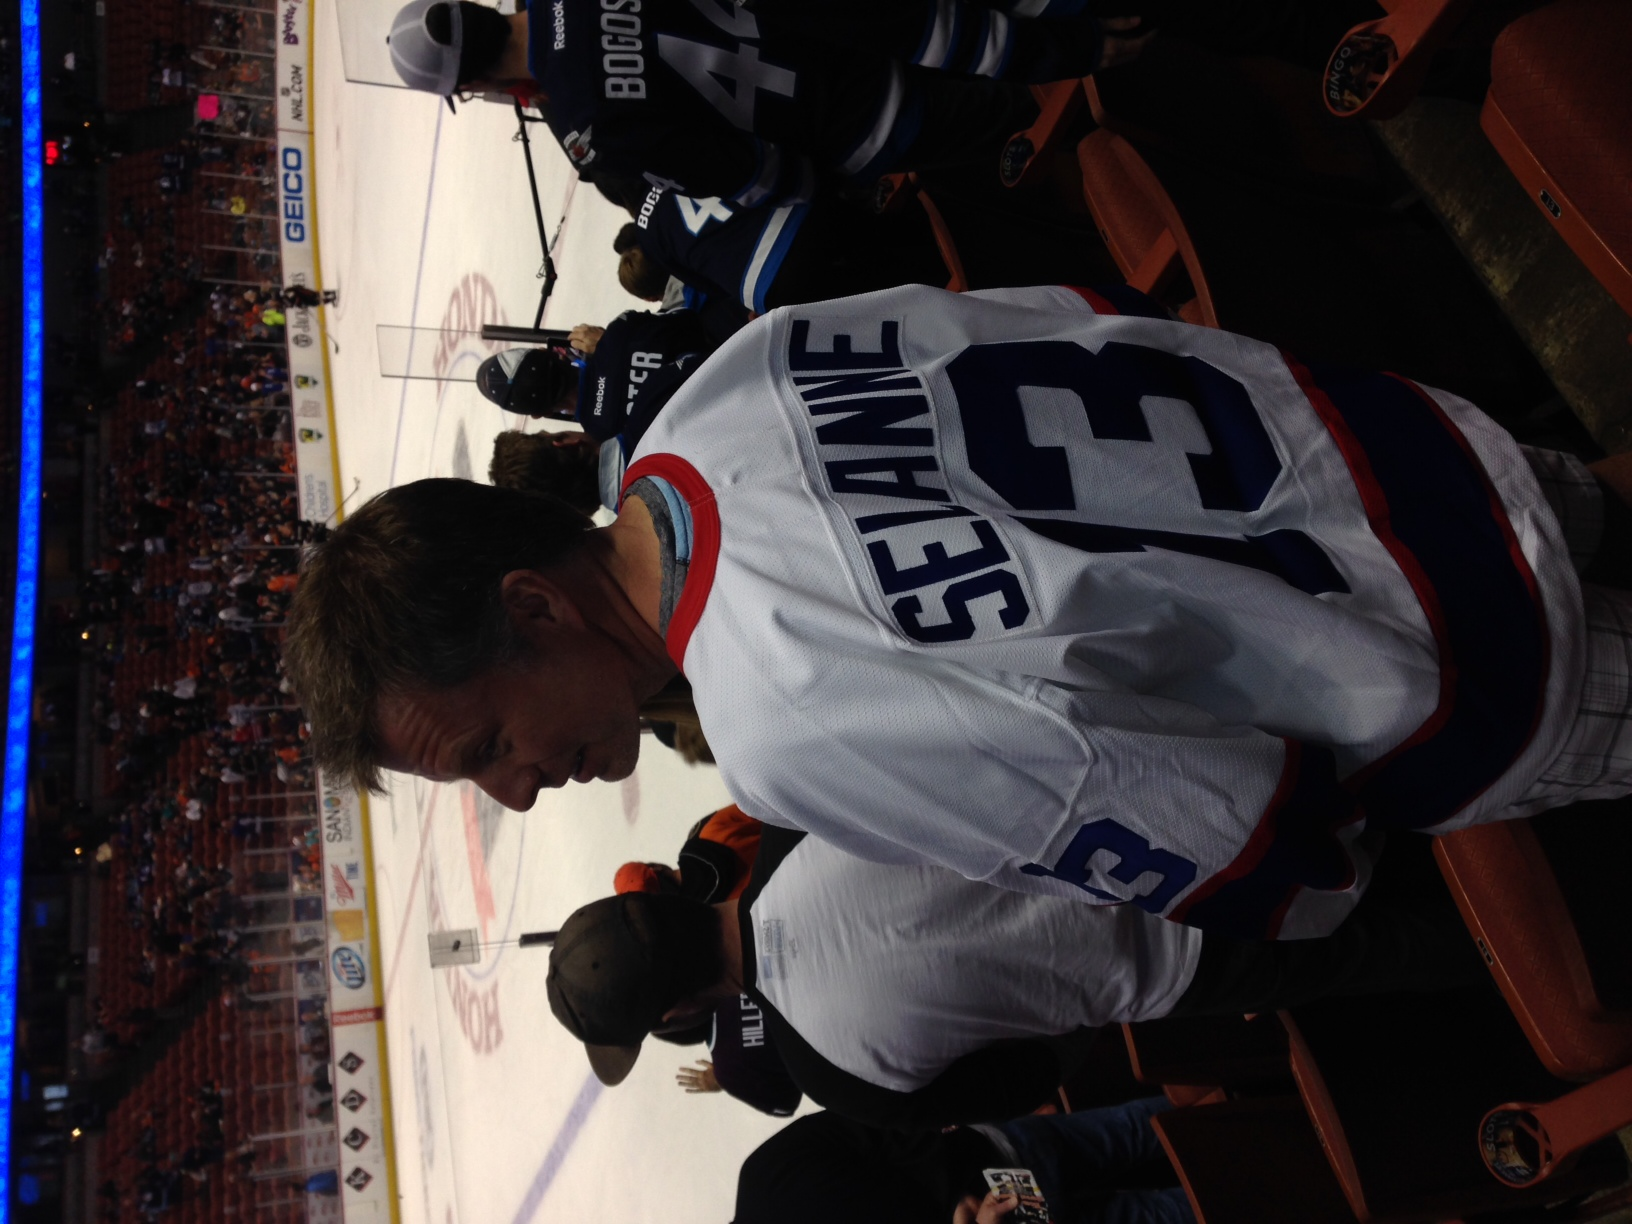 Jets' fan David Vanderwees, in his vintage Selanne jersey, watches the team warm up in Anaheim Monday.